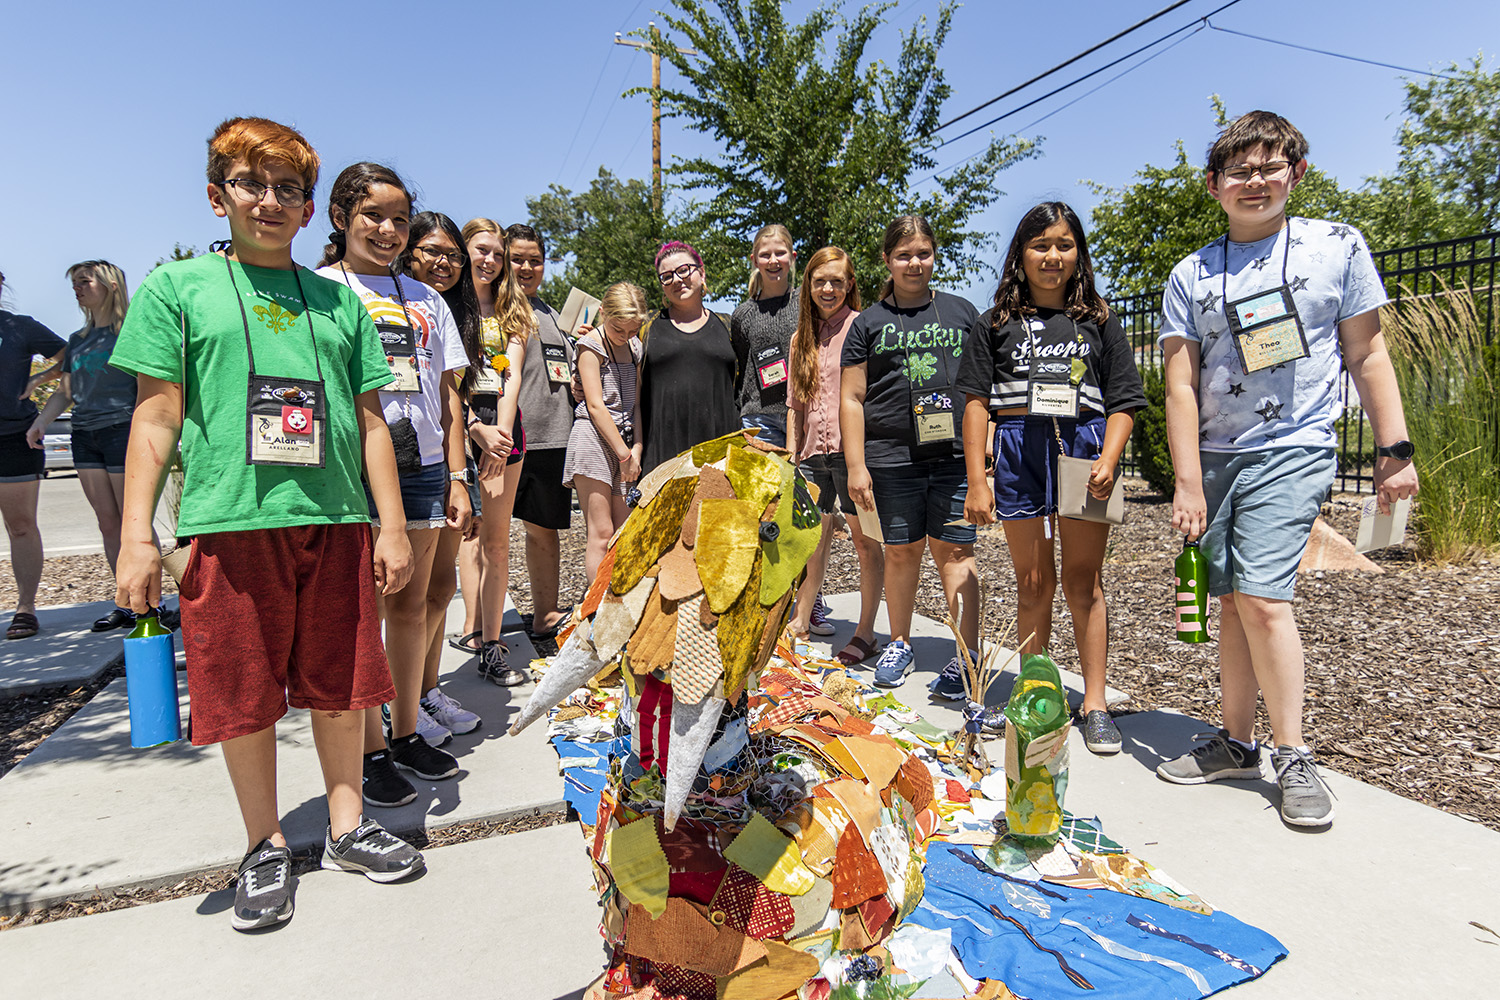 Rattlesnake group made out of textile waste. Group led by Clever Octopus instructor - Amanda L.